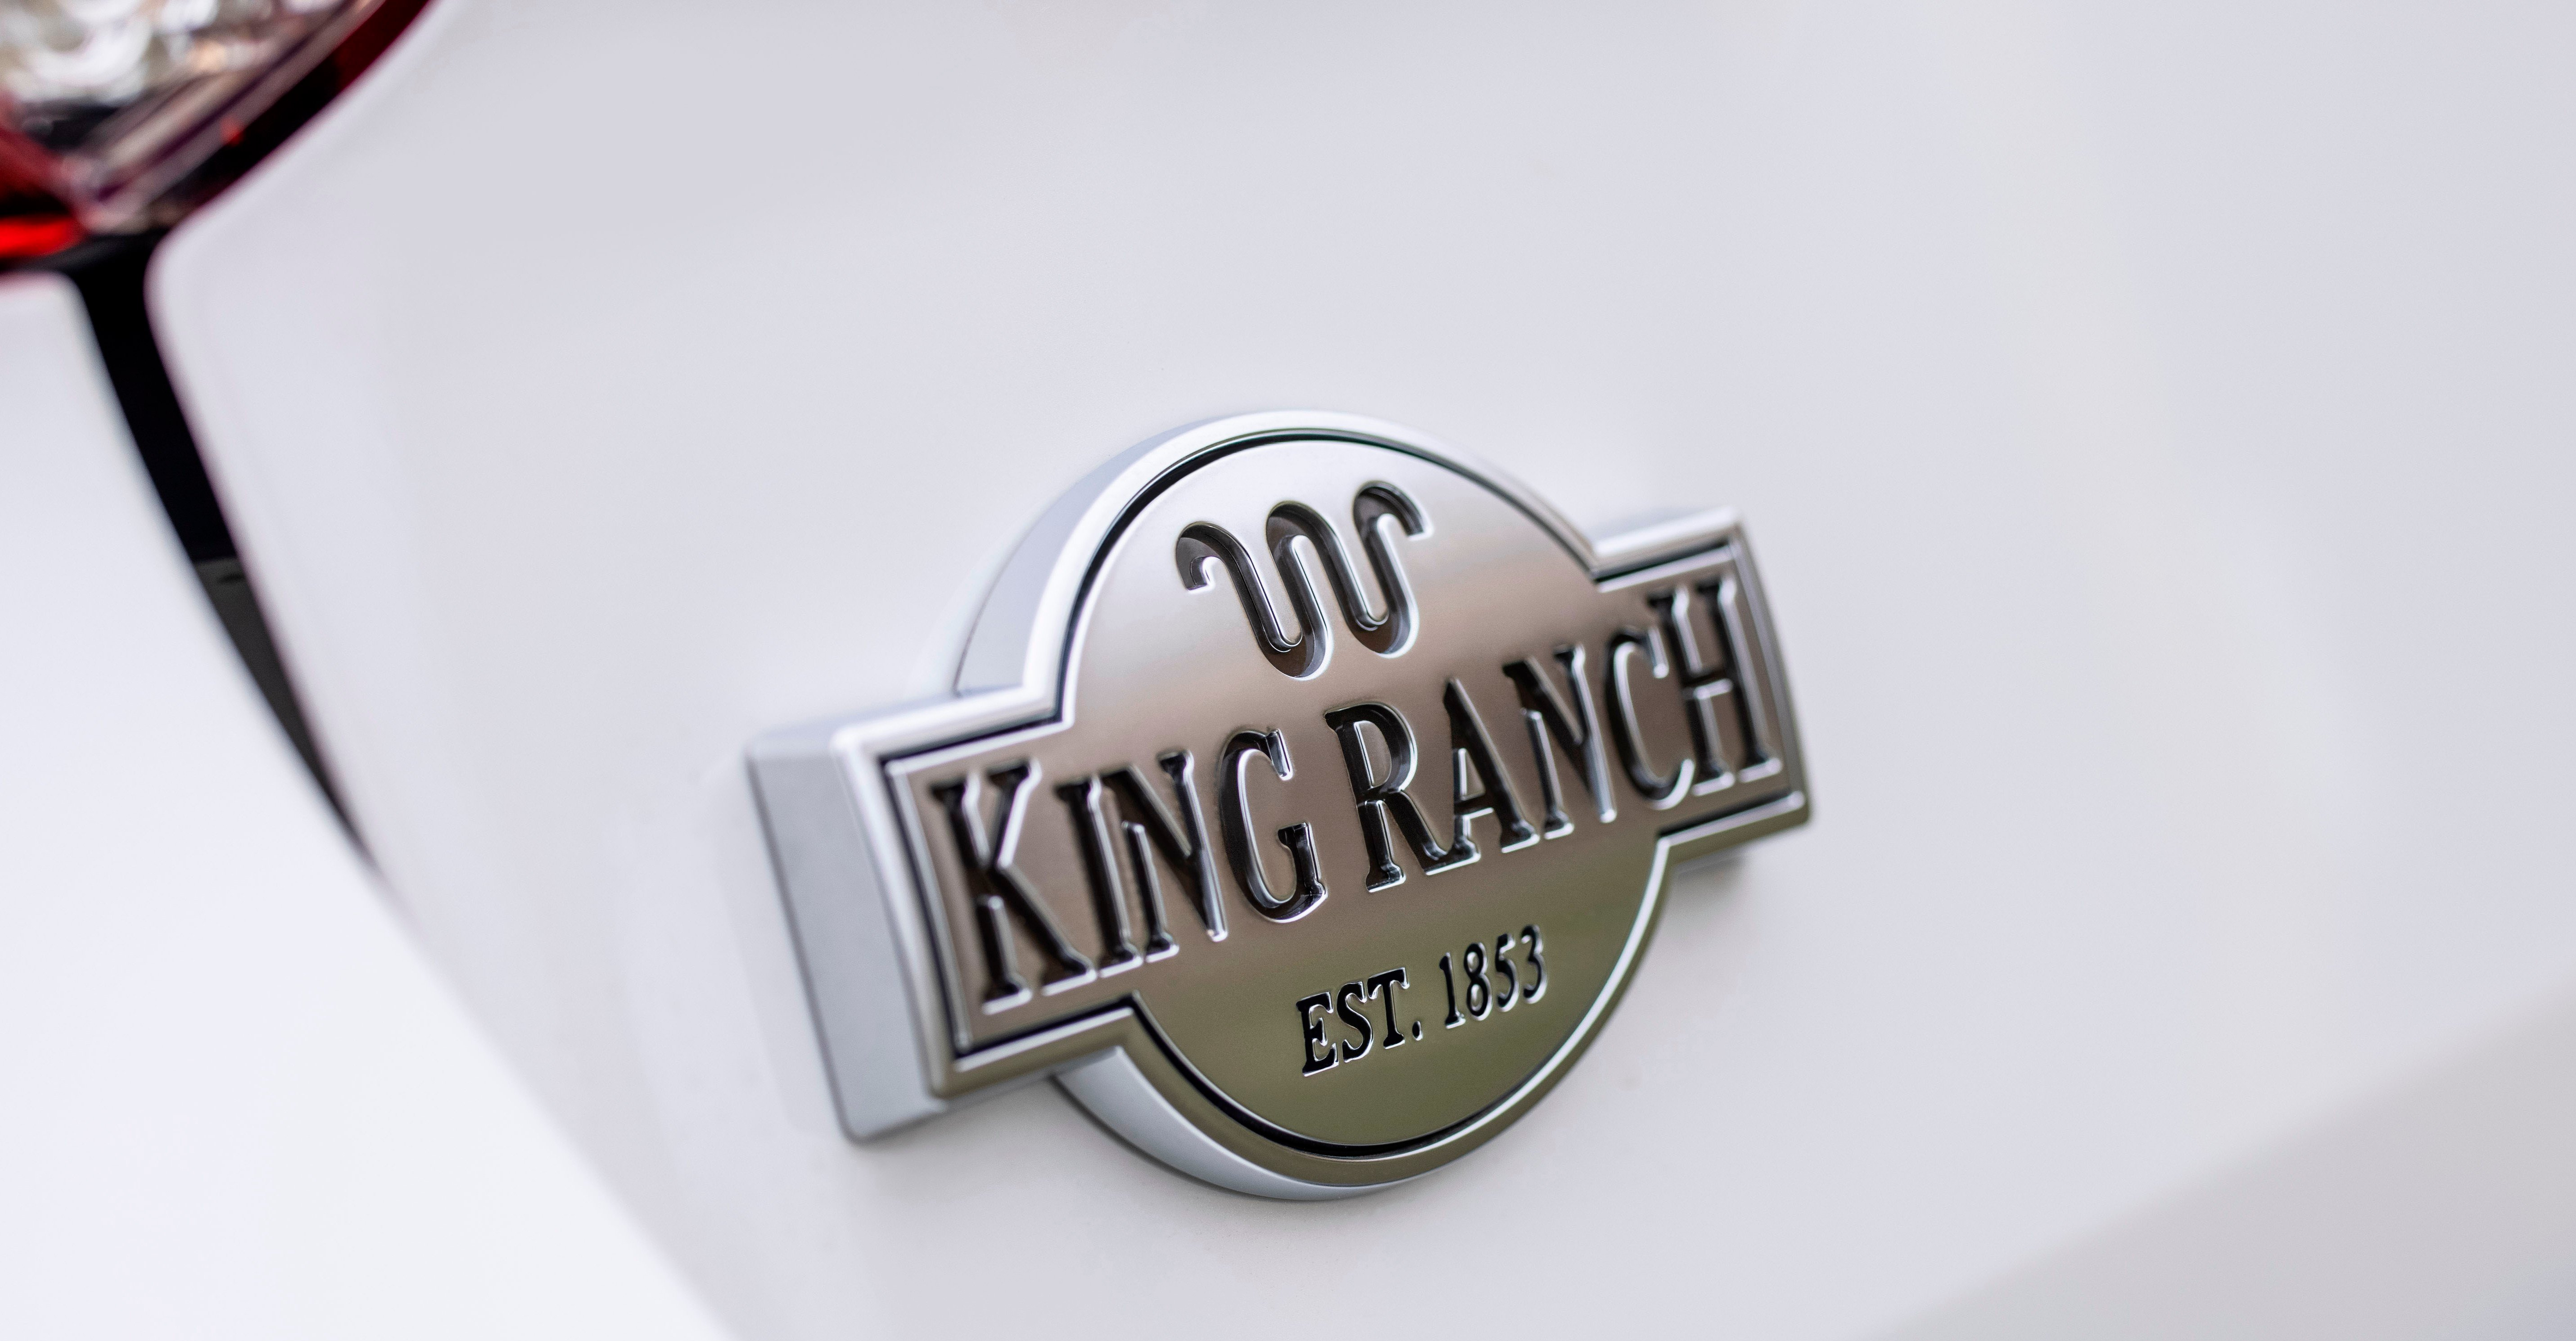 King Ranch brand is now on the Ford Explorer